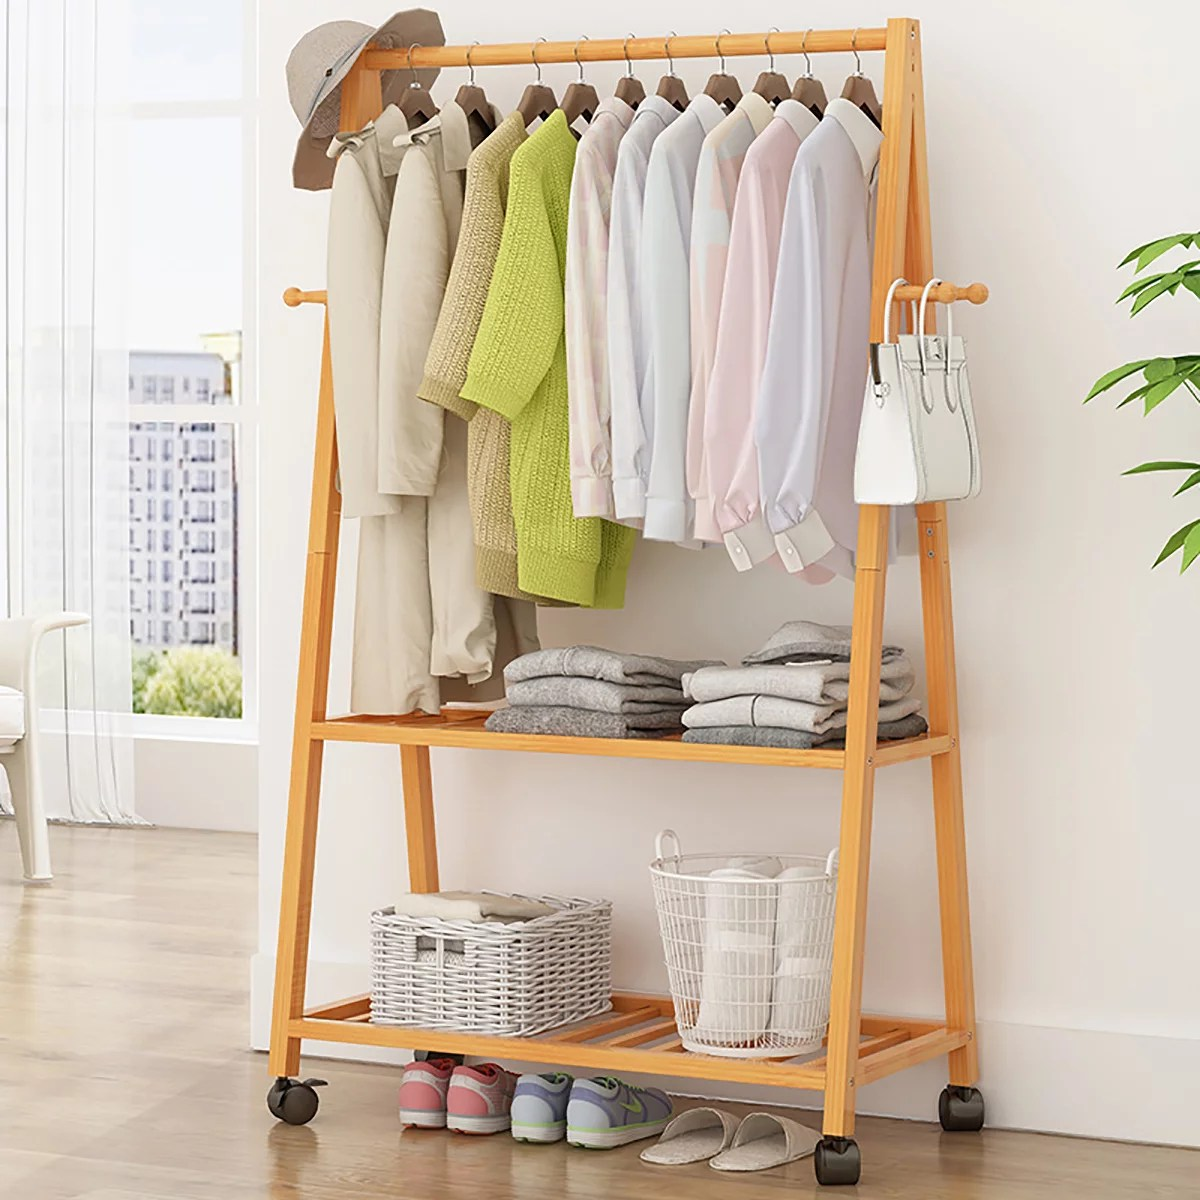 28 39inches heavy duty clothes rack 2 tier hanging garment rack bamboo shelf closet organizer clothes hanger with wheels easy to assemble